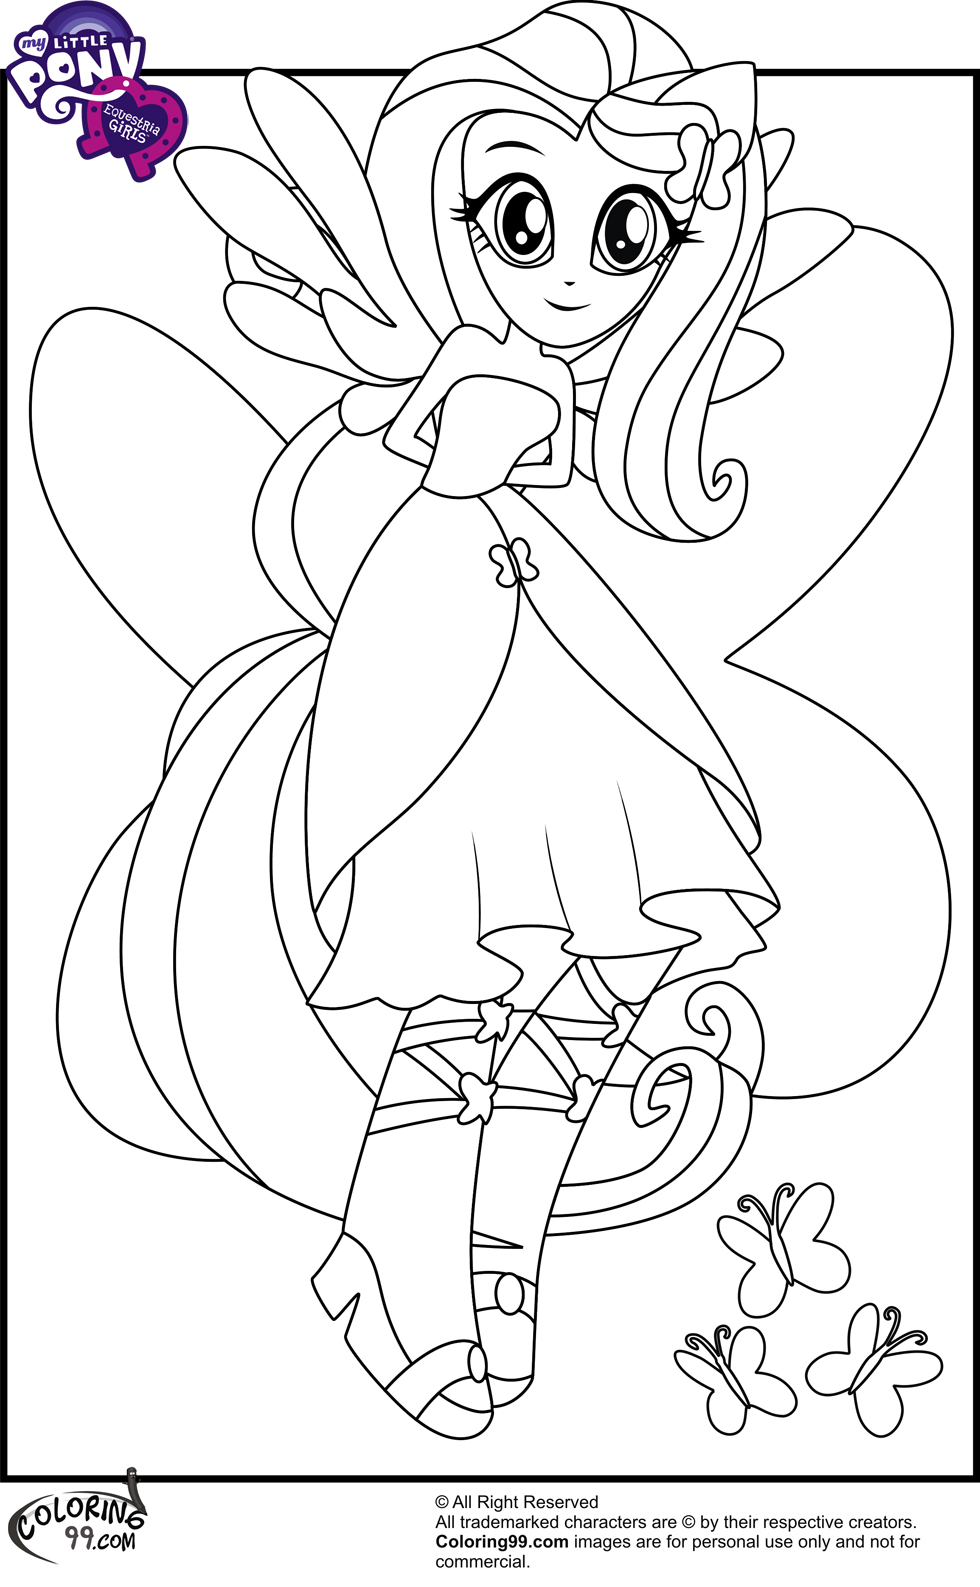 My Little Pony Equestria Girl Coloring Pages To Print At Getdrawings